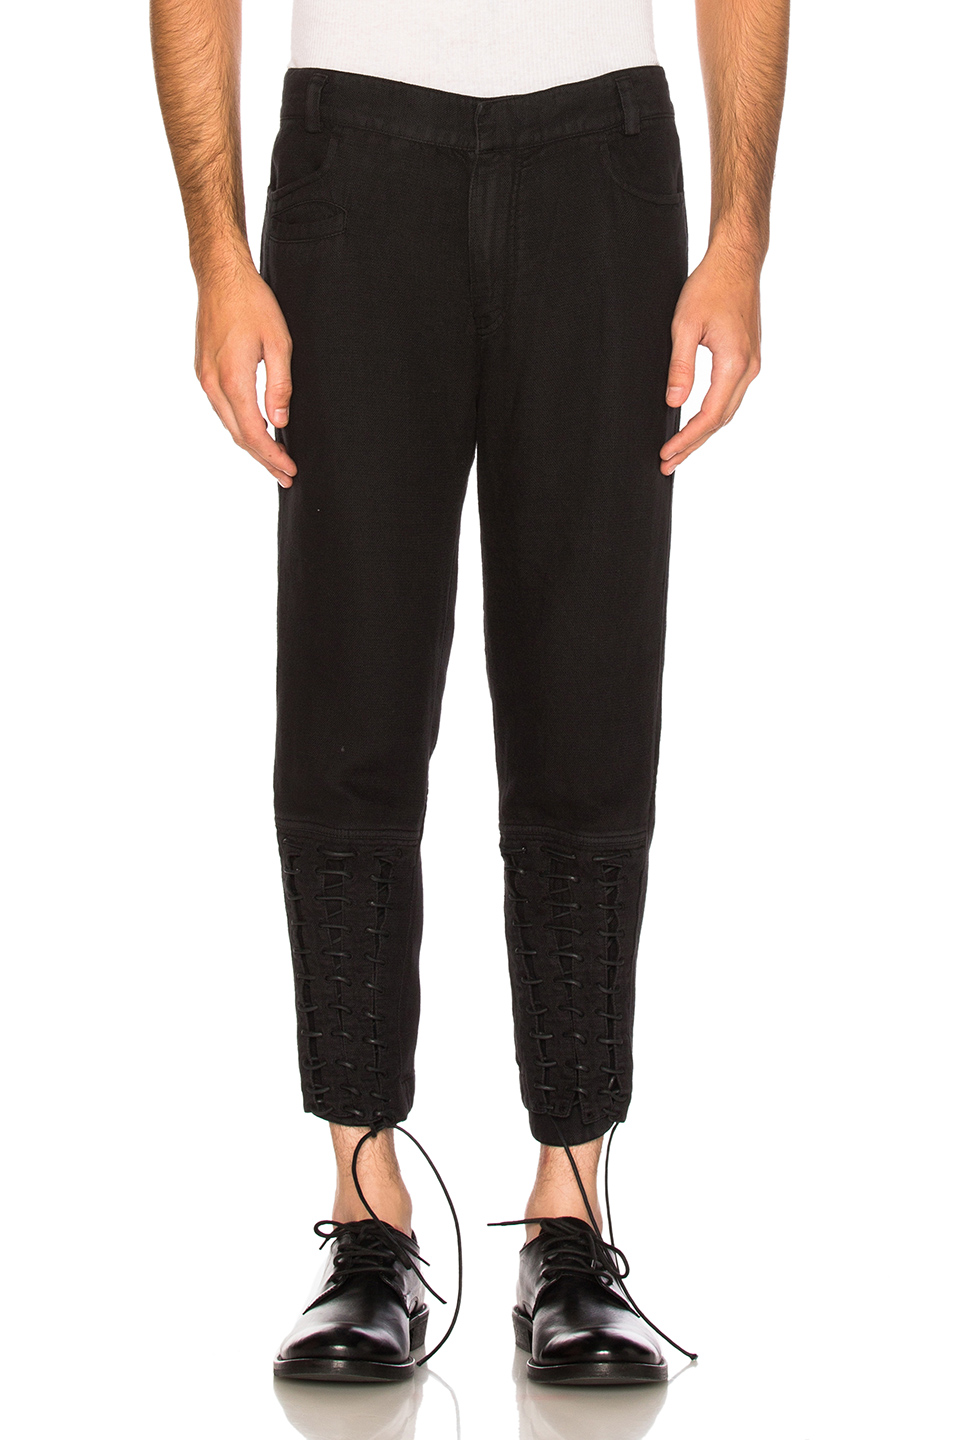 Haider Ackermann Lace Up Biker Trousers in Black